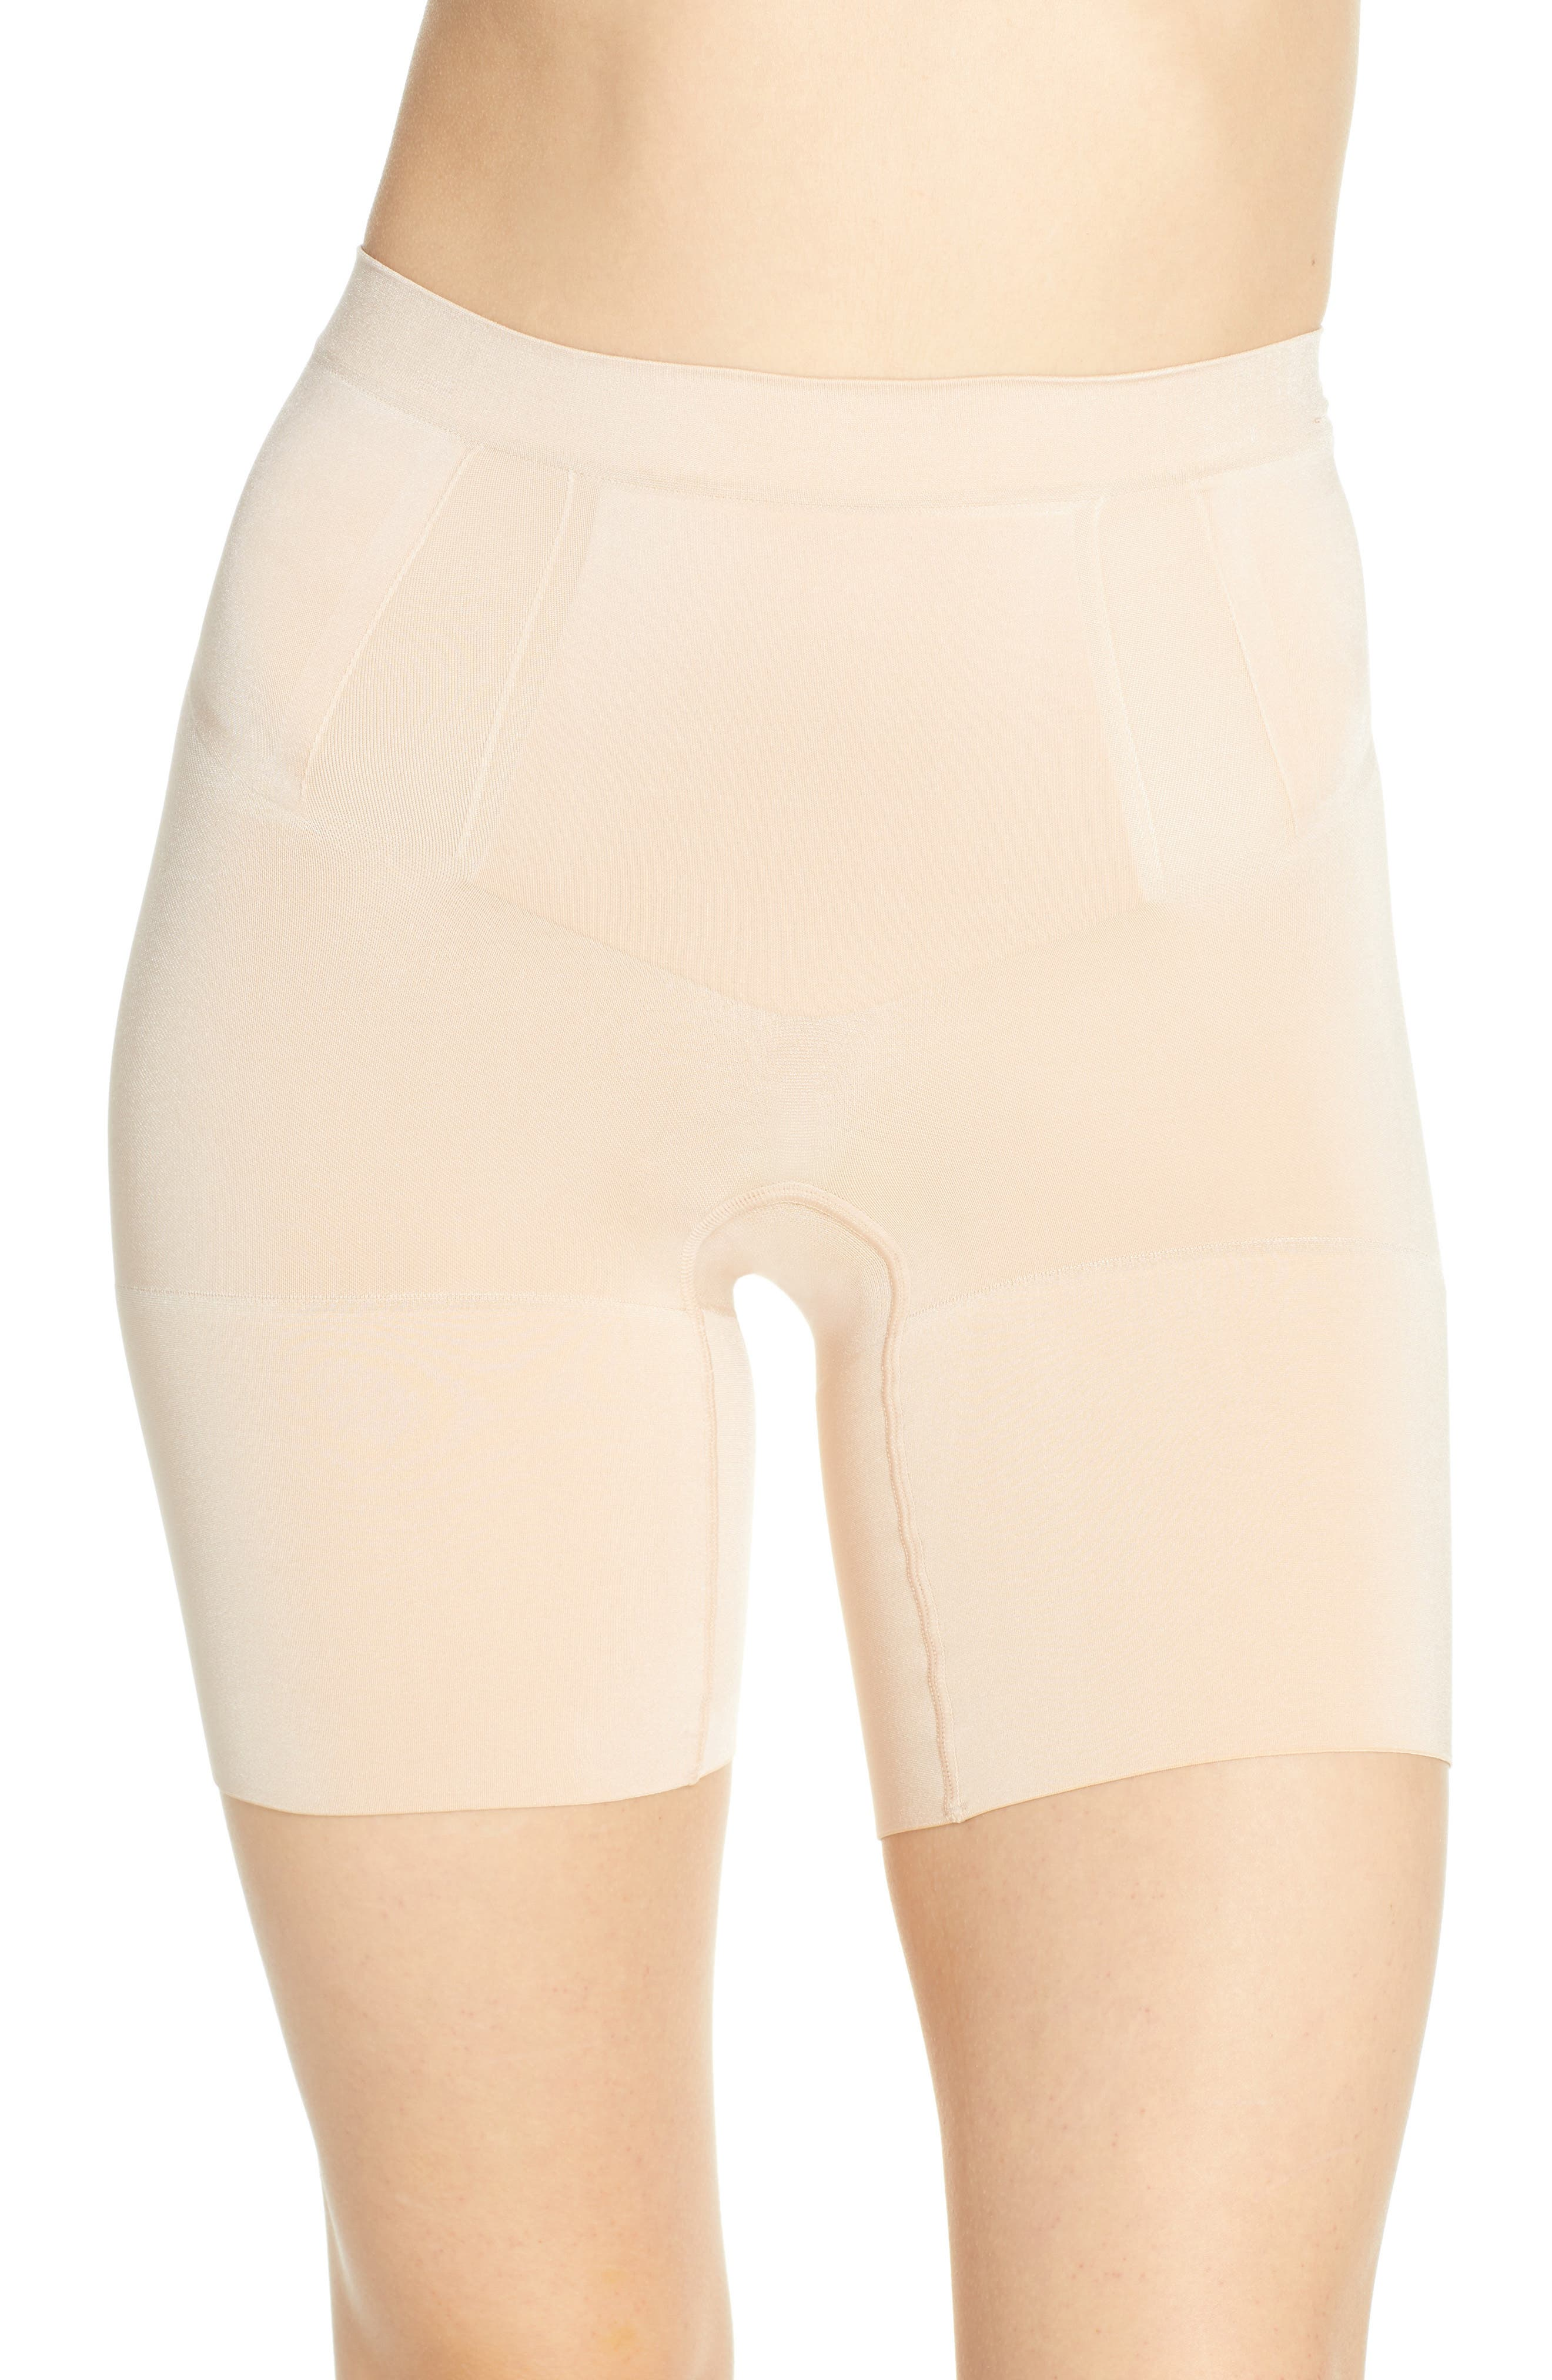 01ee19925b UPC 843953275893 - Spanx OnCore Mid-Thigh Shaping Shorts  SS6615 ...